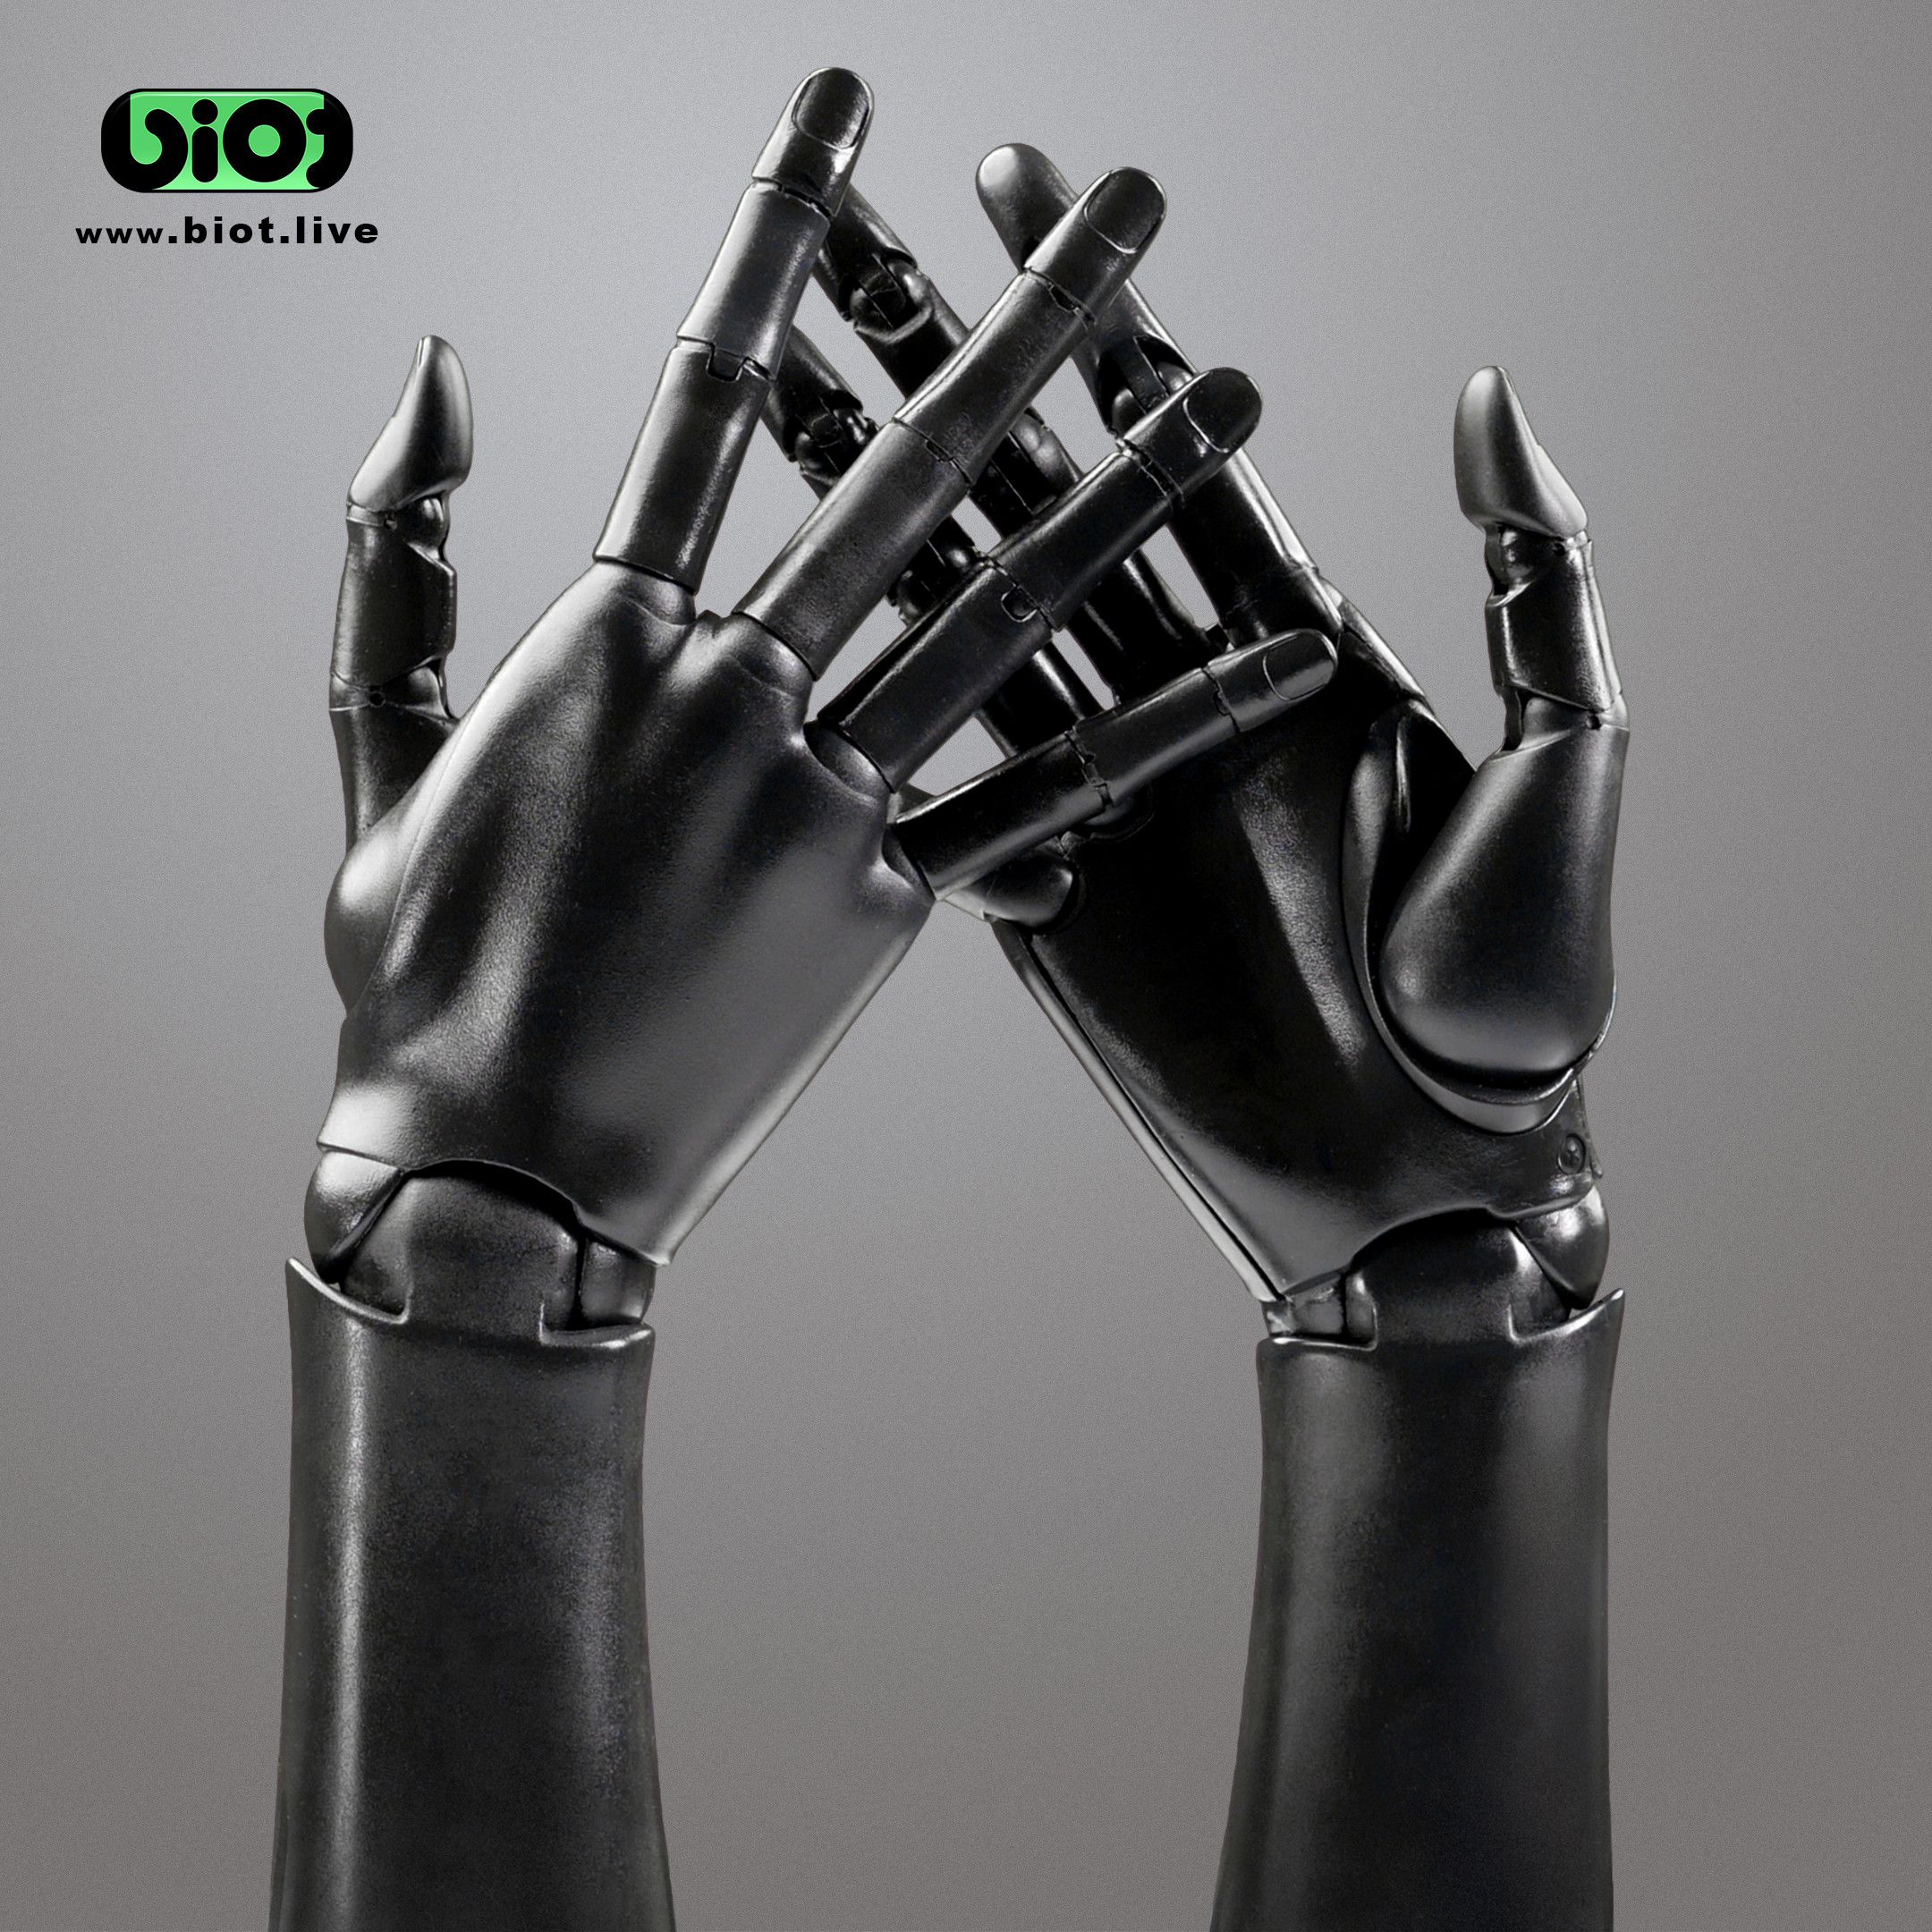 Pair of bionic hands